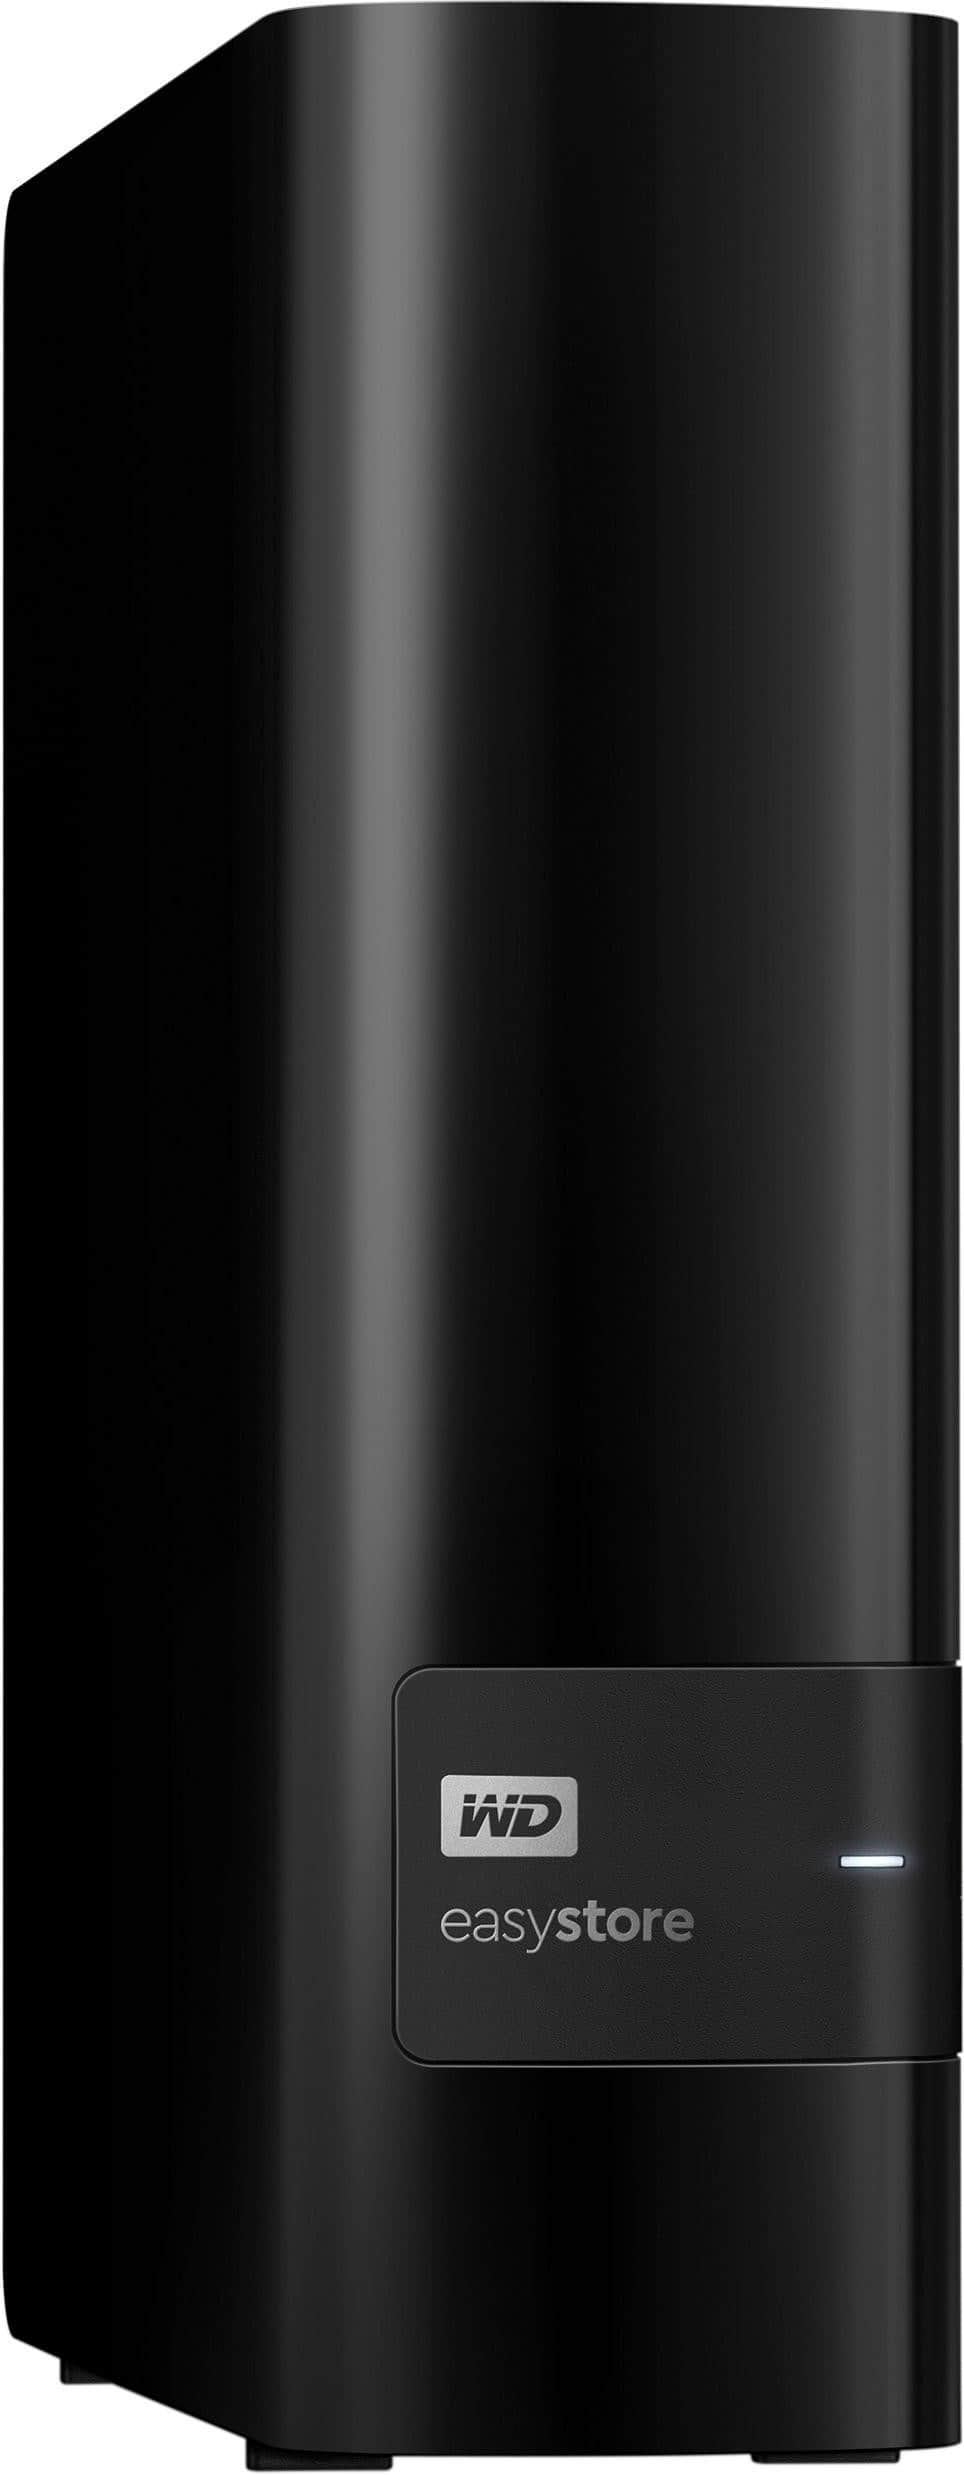 WD - easystore® 8TB External USB 3.0 Hard Drive $199 + Free Shipping @ BesyBuy